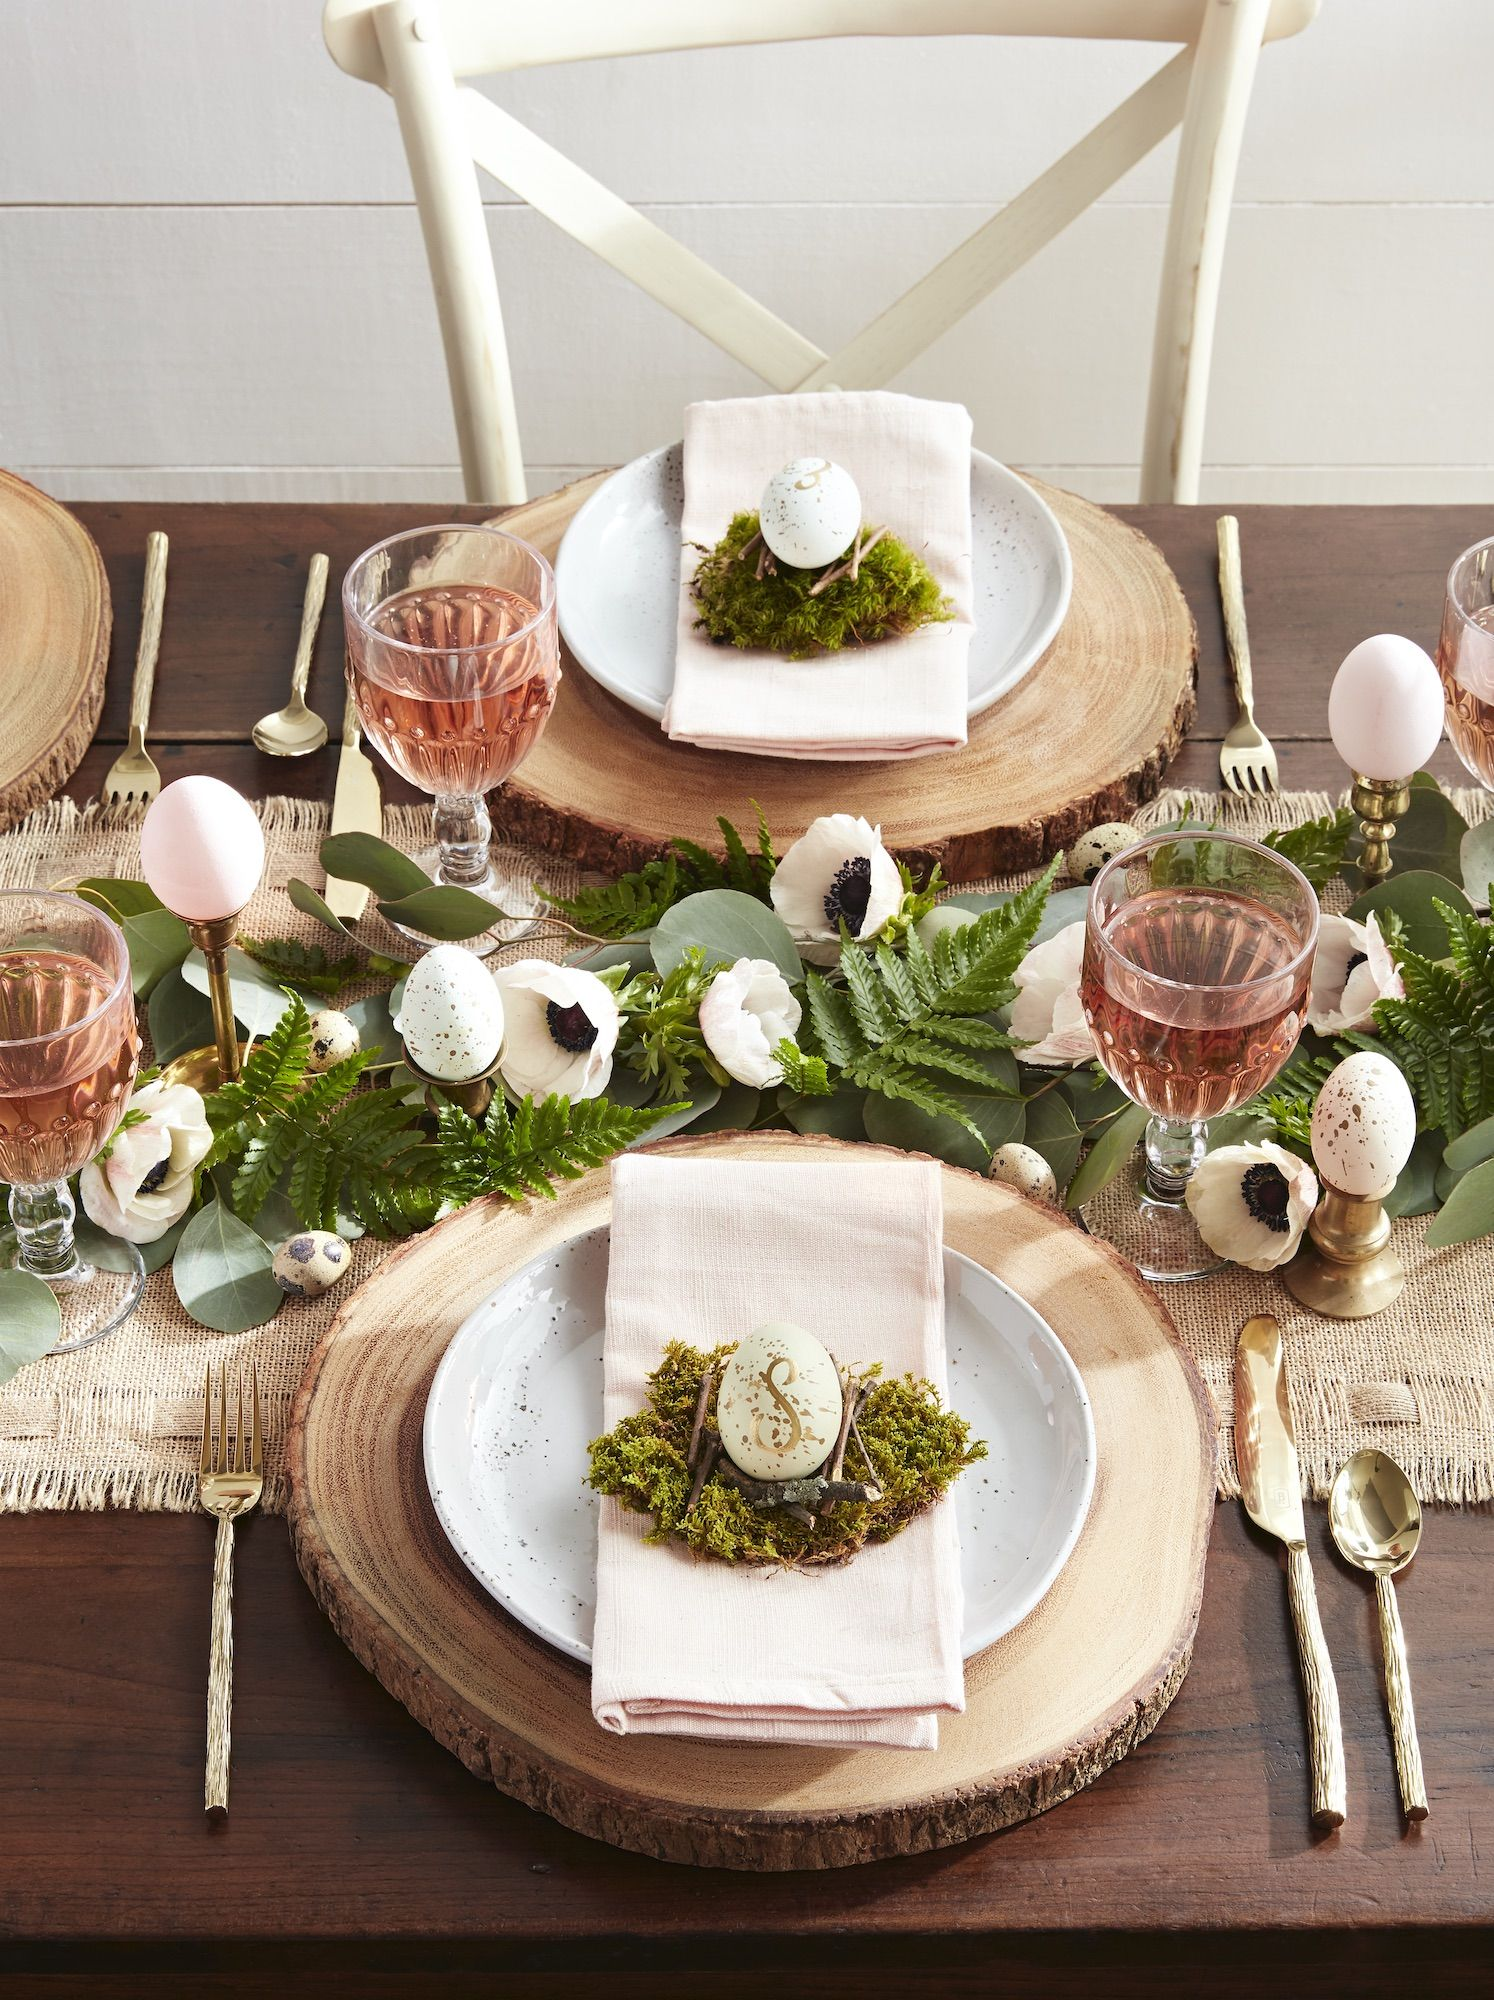 24 Spring Centerpieces To Diy Spring Centerpiece Ideas With Or Without Flowers